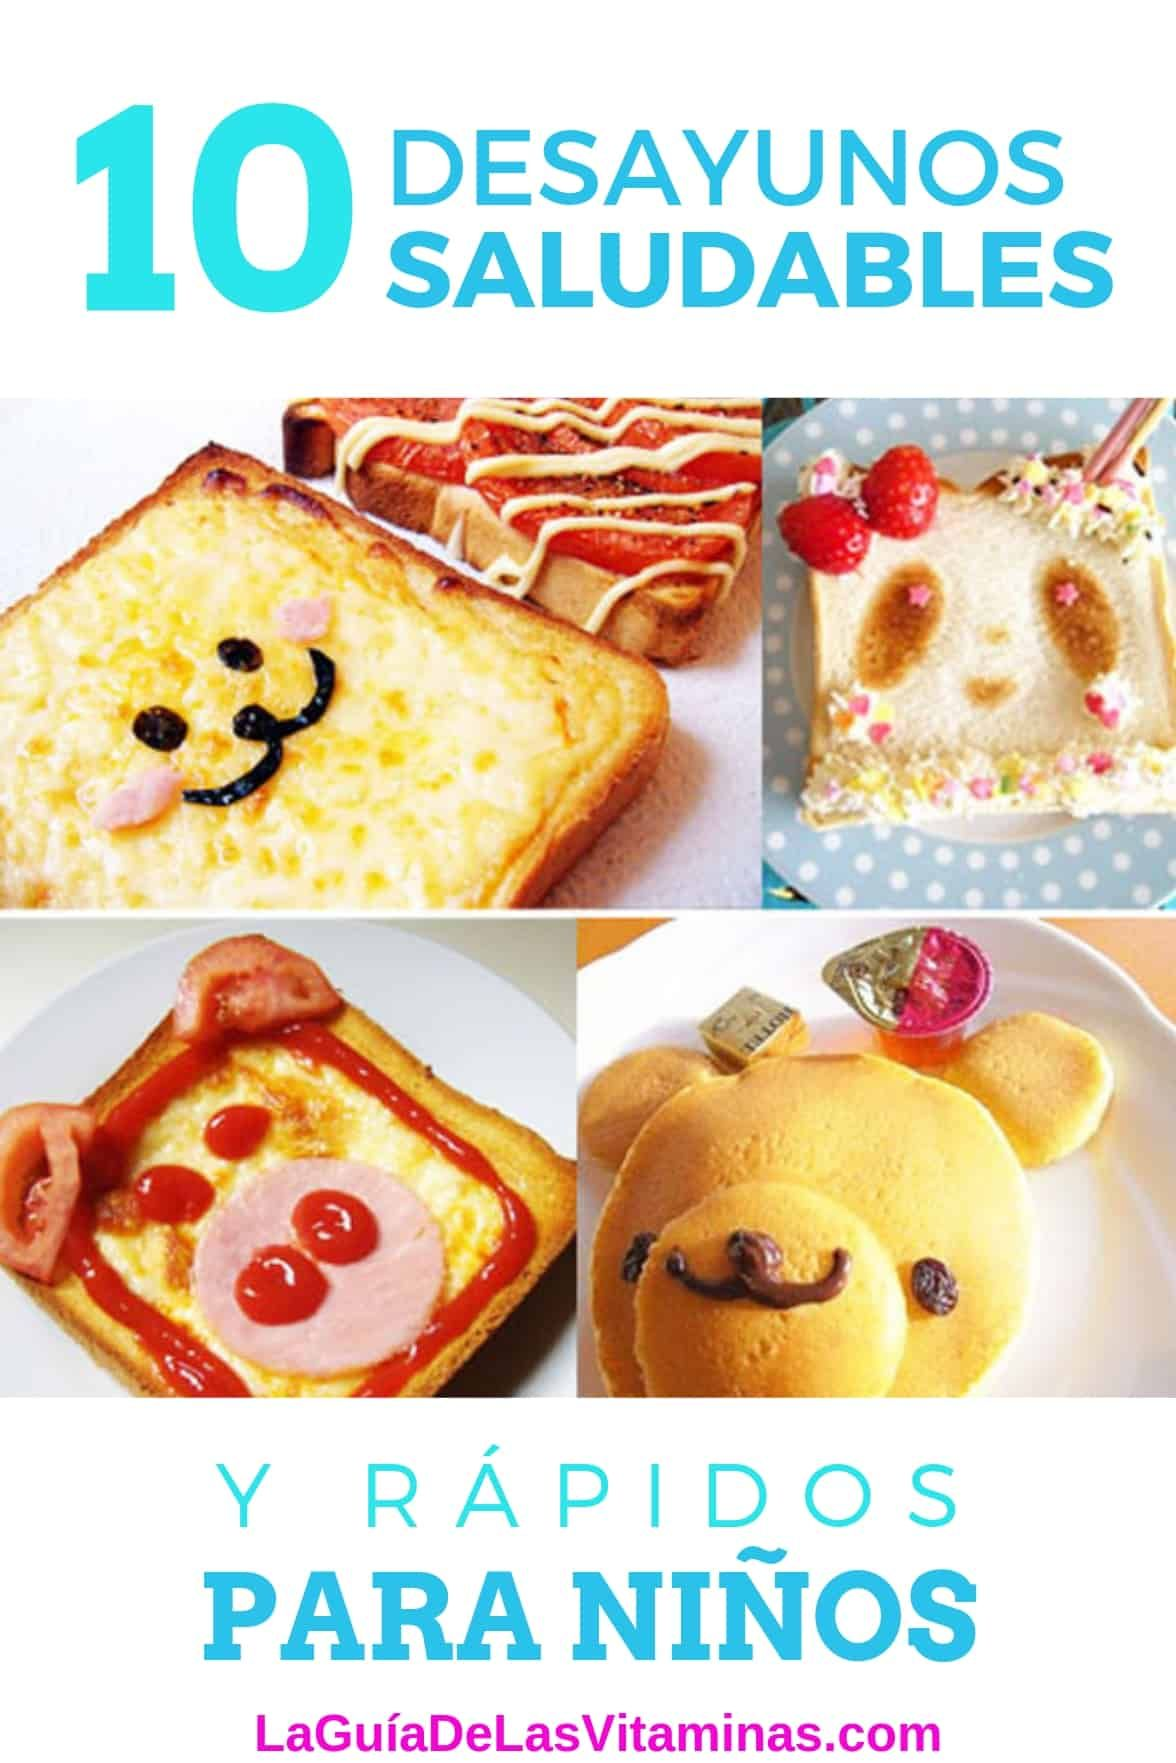 10 Desayunos Saludables Y Rápidos Para Niños Food Healty Food Easy Toddler Meals